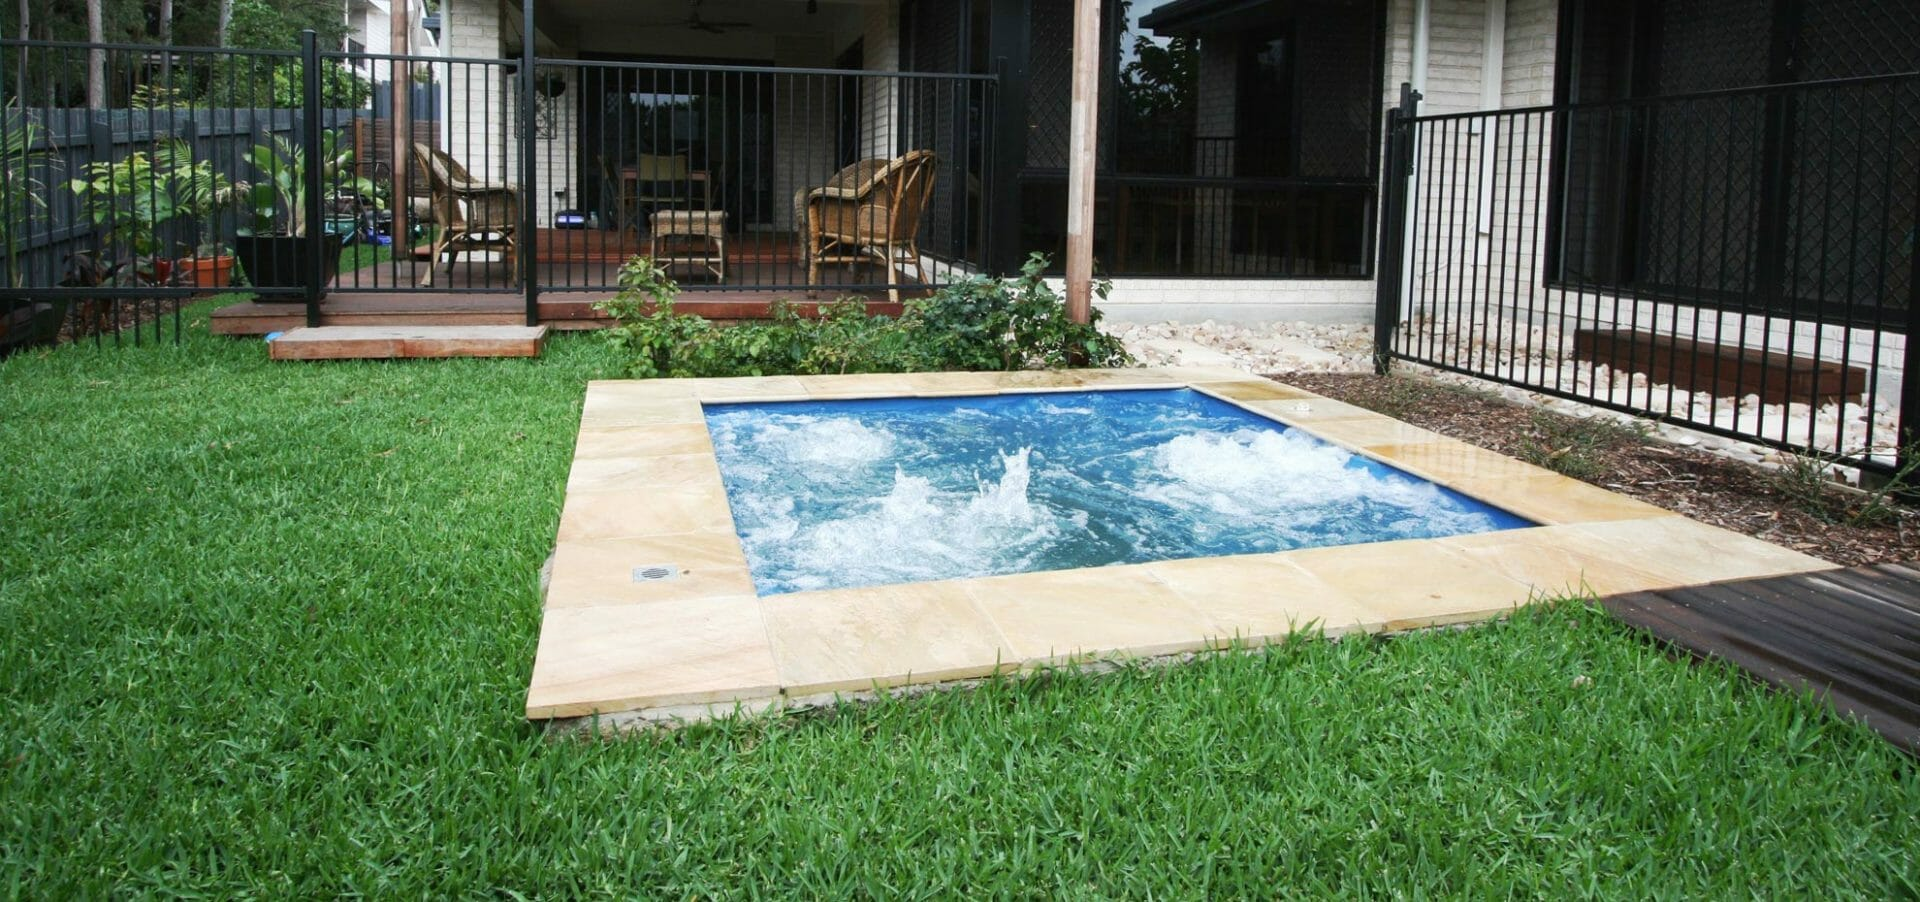 Fiberglass pool with coping stone by Leisure Pools